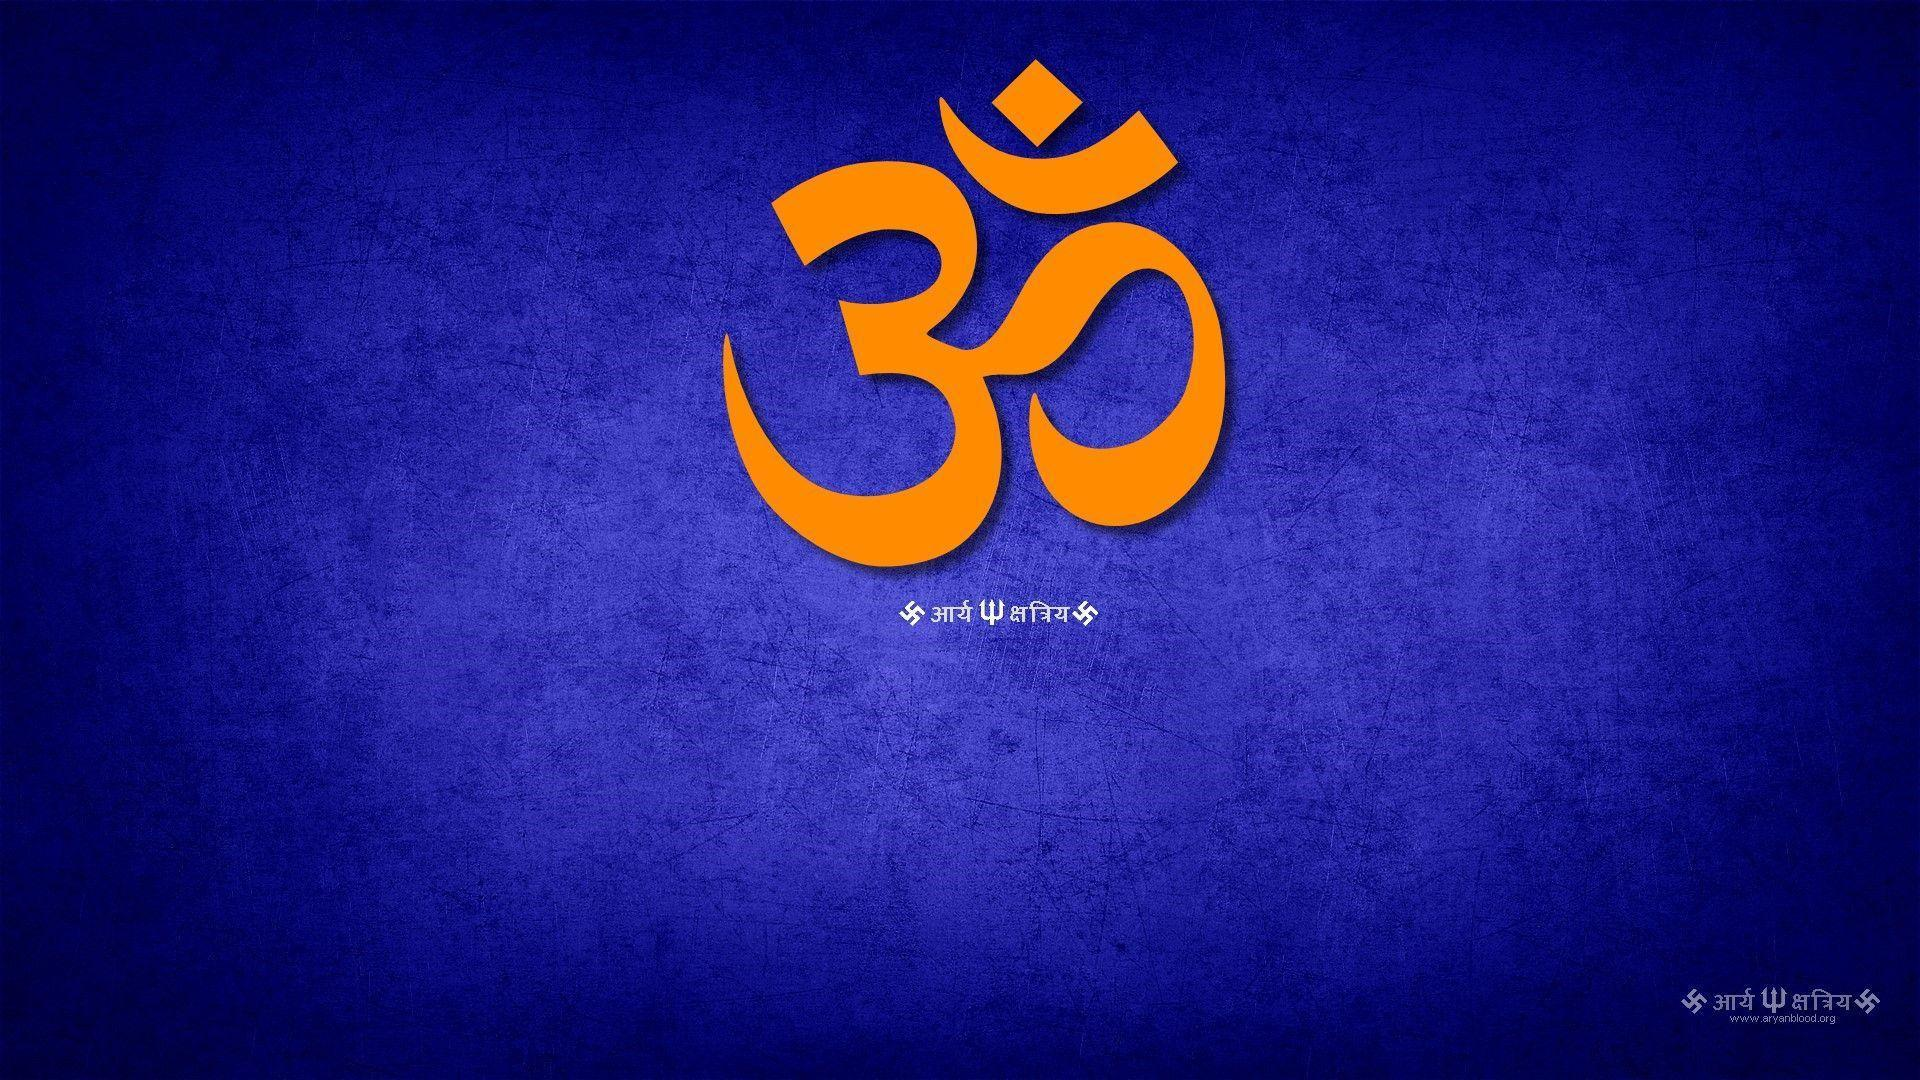 om wallpapers - wallpaper cave